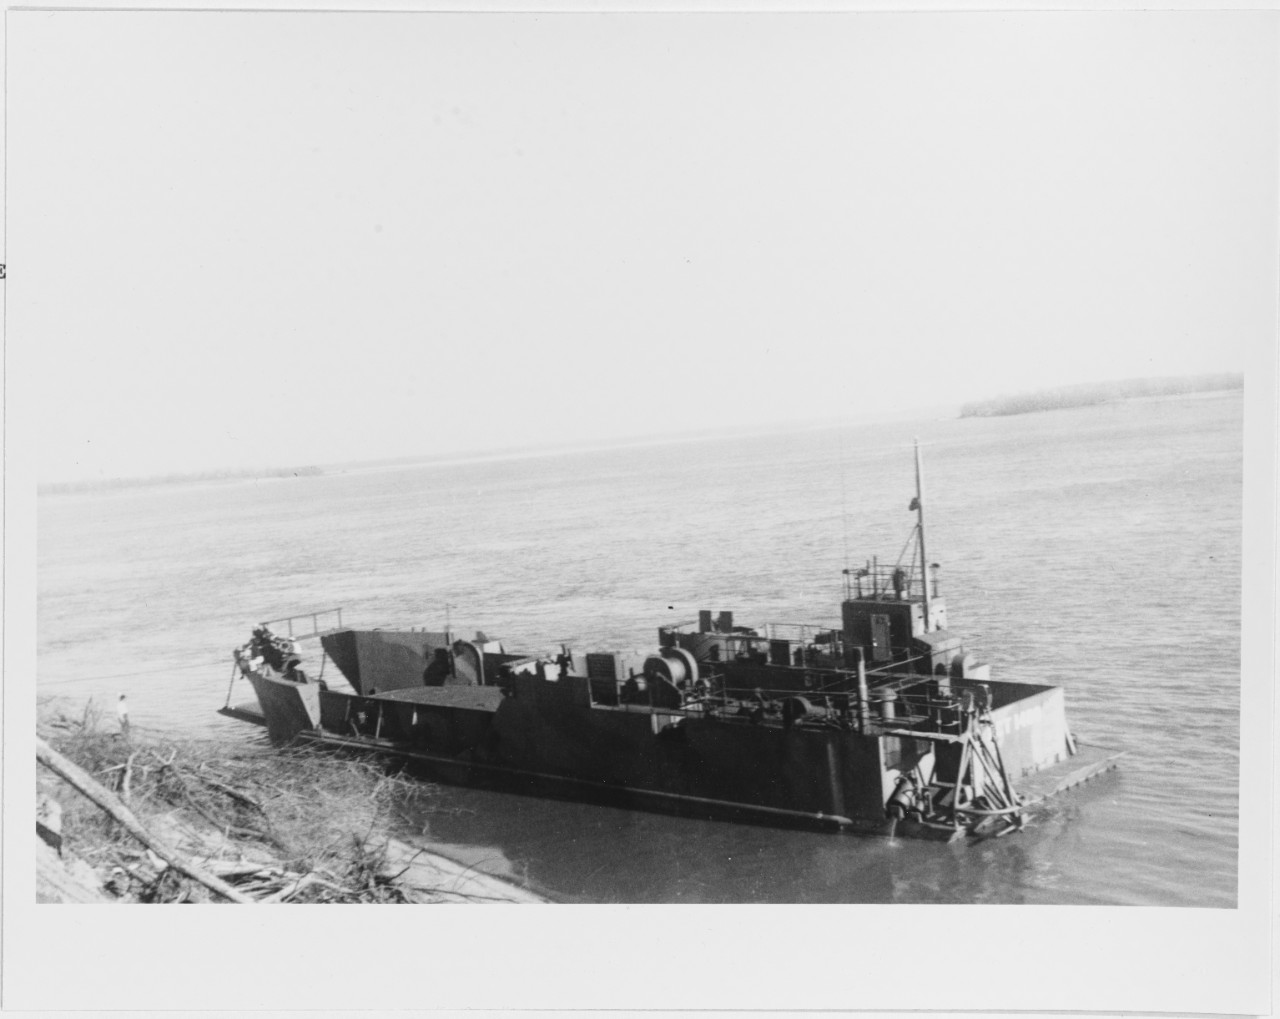 USS LCT-1400 off Island 35, just below Reverie, Tennessee, November 23, 1944